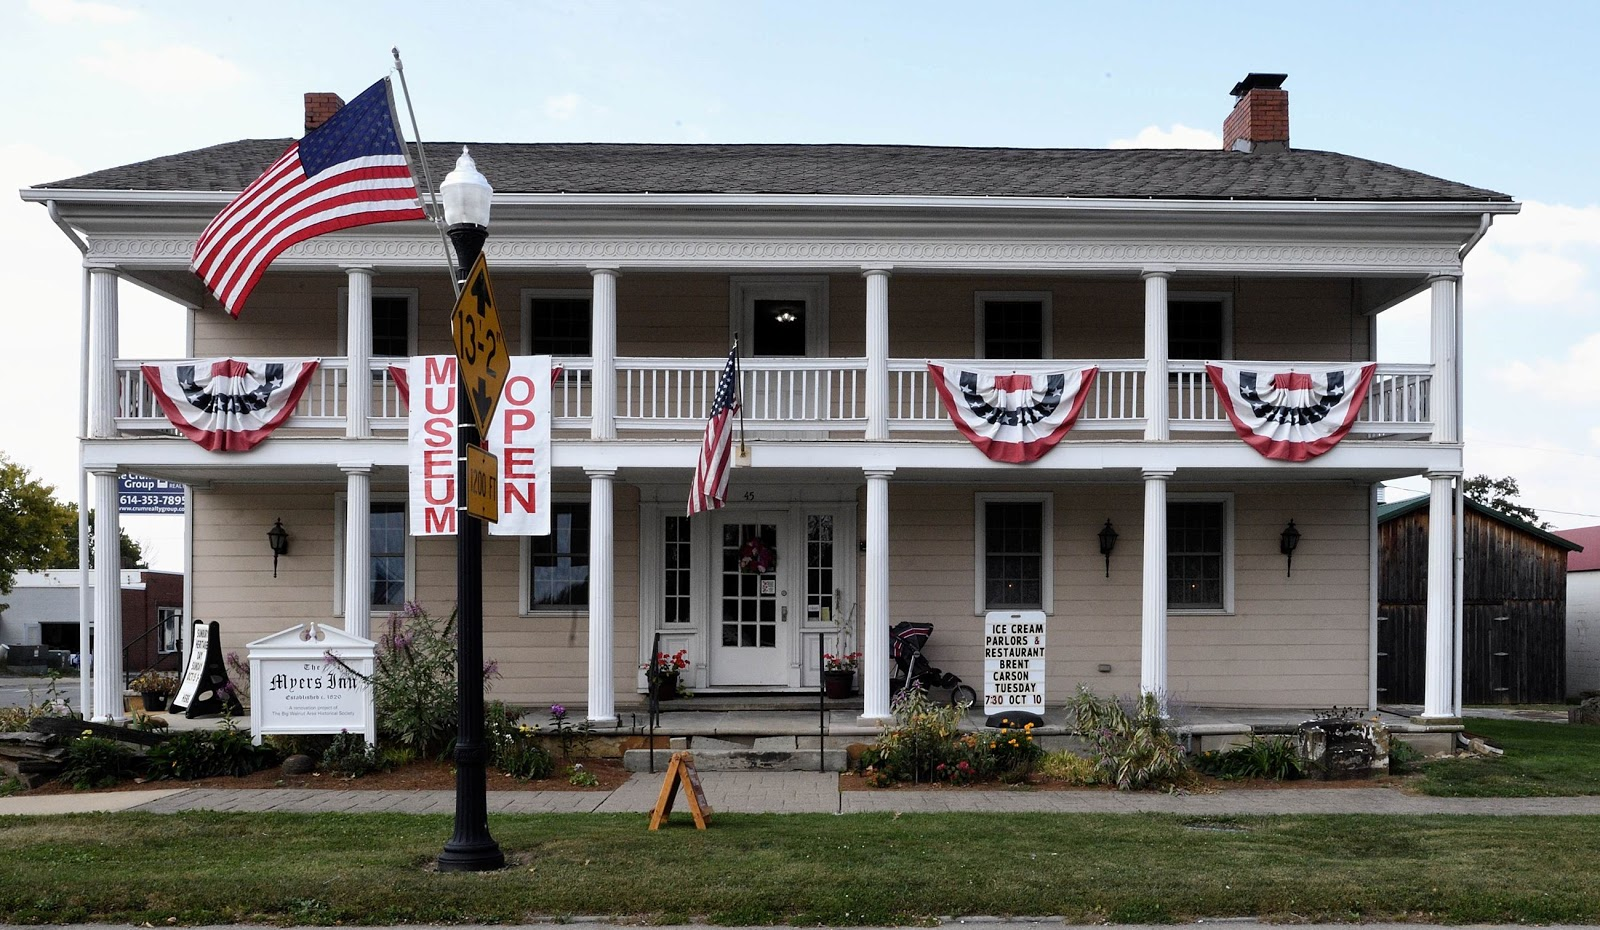 A picture of a historic building with white columns and American flags in Sunbury, Ohio.